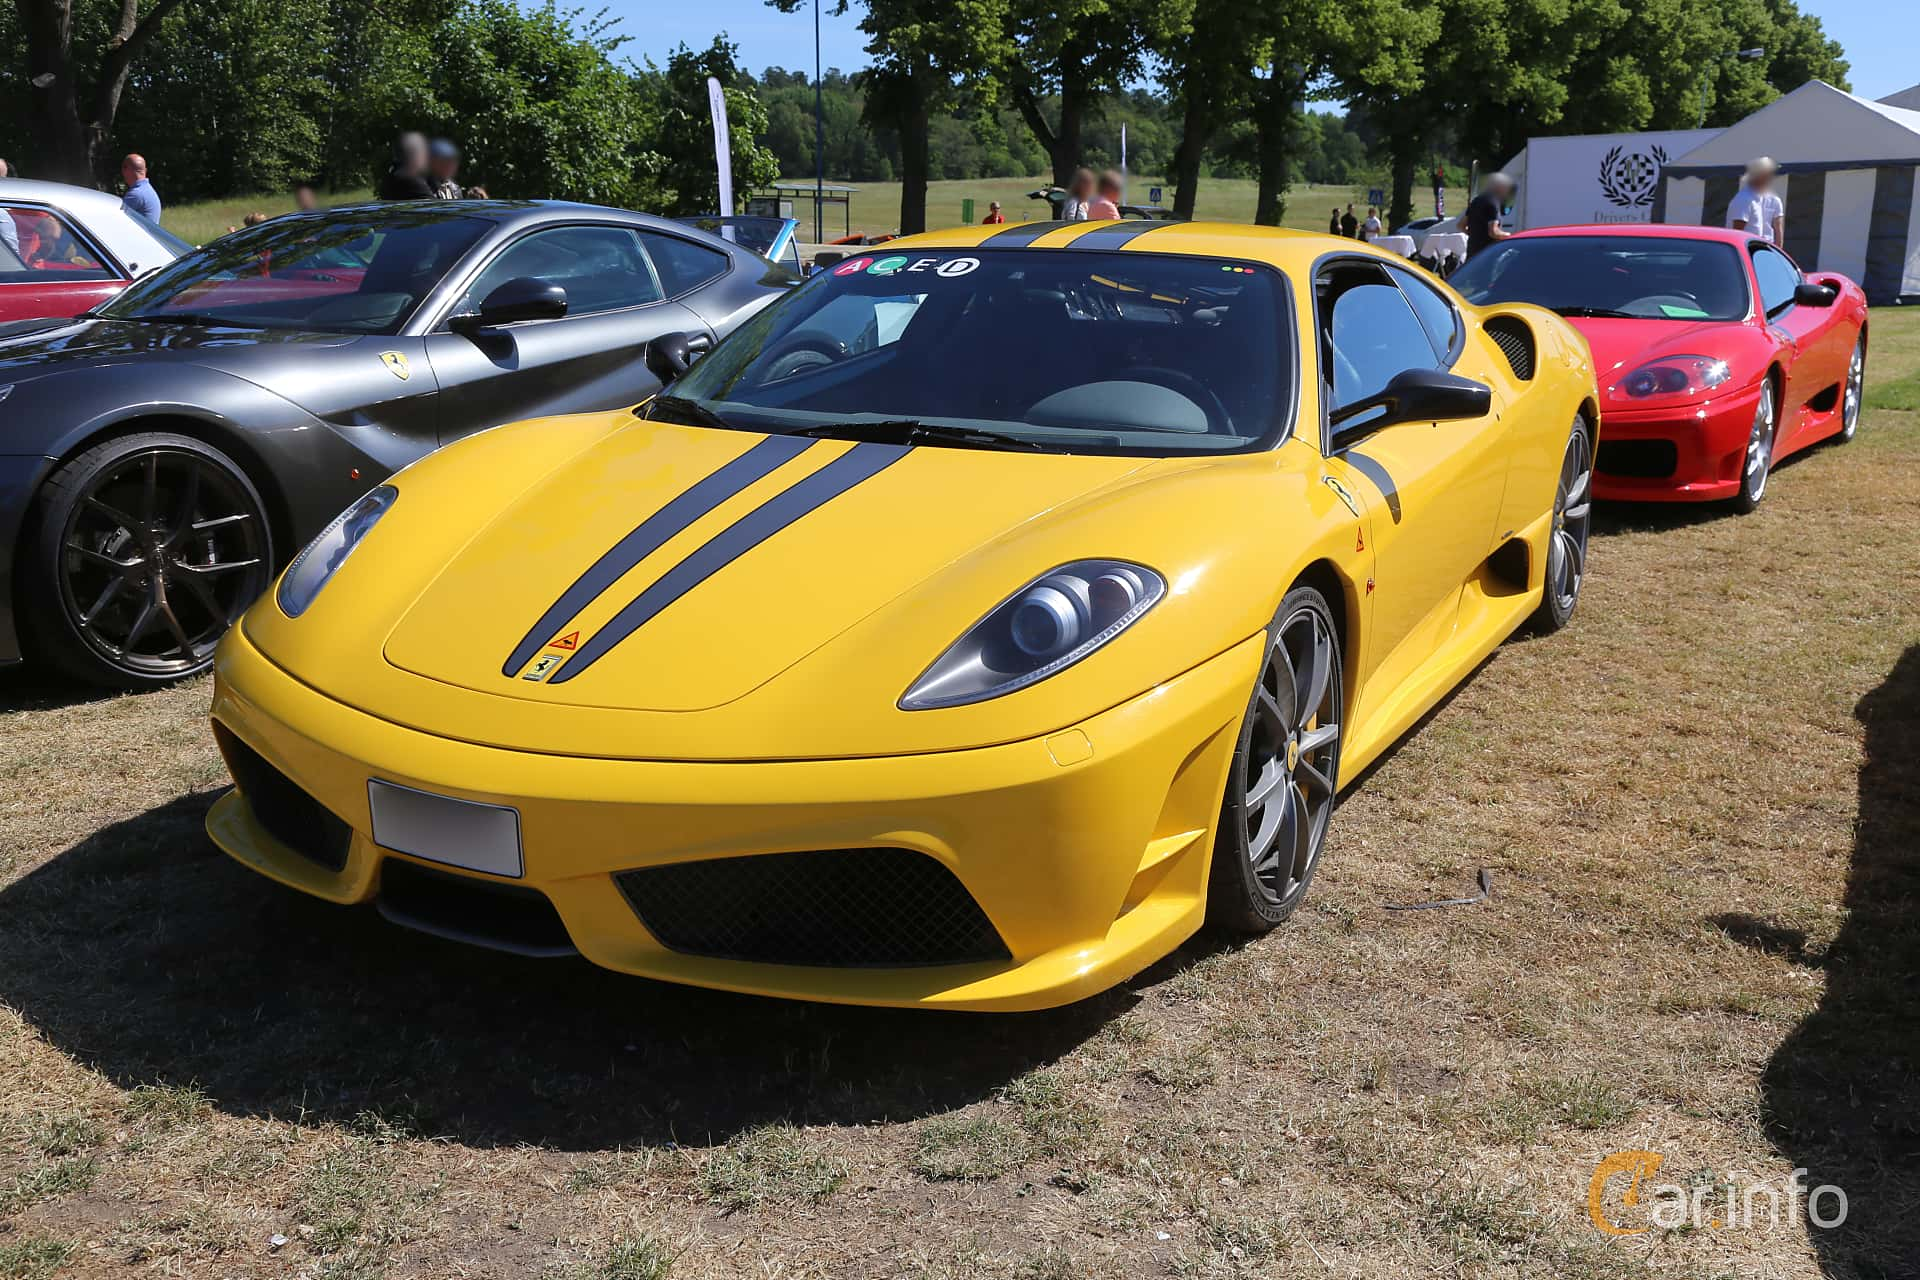 Ferrari 430 Scuderia 4.3 V8 Sequential, 510hp, 2009 at Cars and Coffee Stockholm 2018